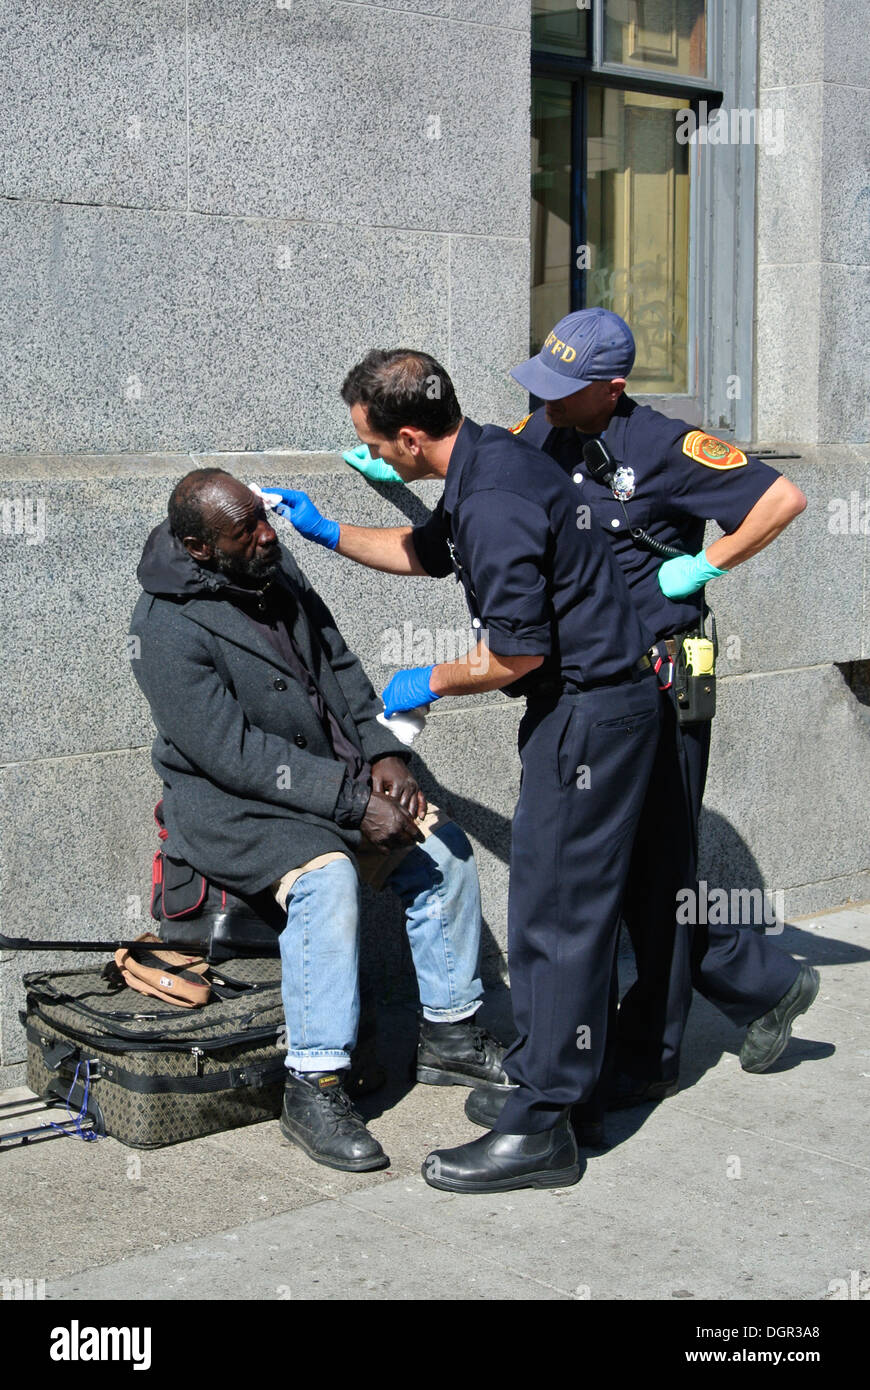 san francisco police give first aid to homeless man in Tenderloin district - Stock Image